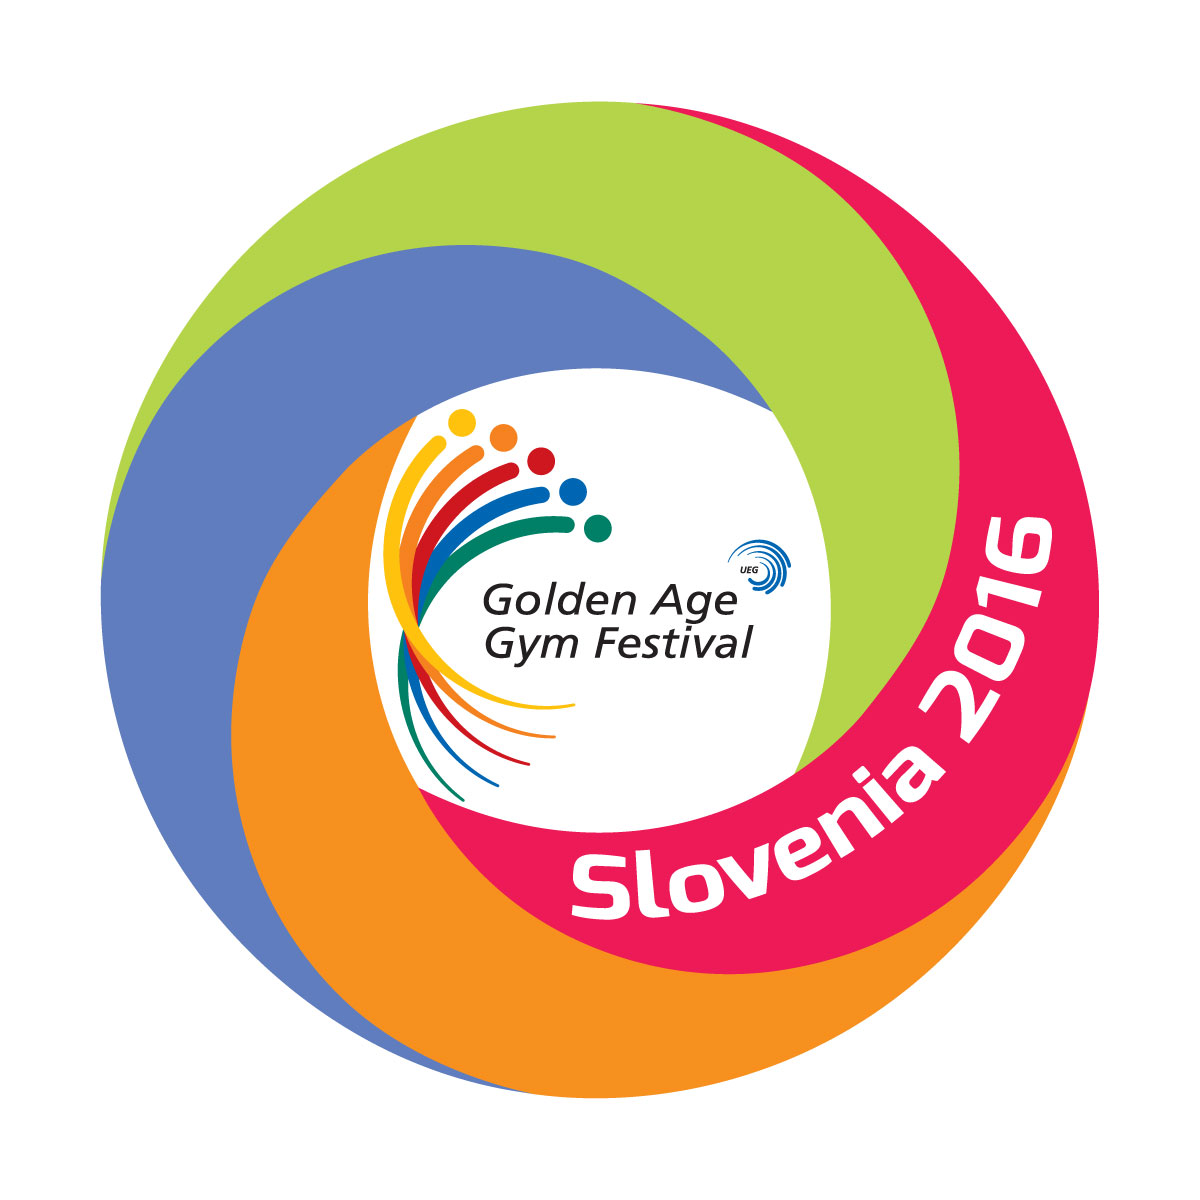 logo golden age 2016.jpg